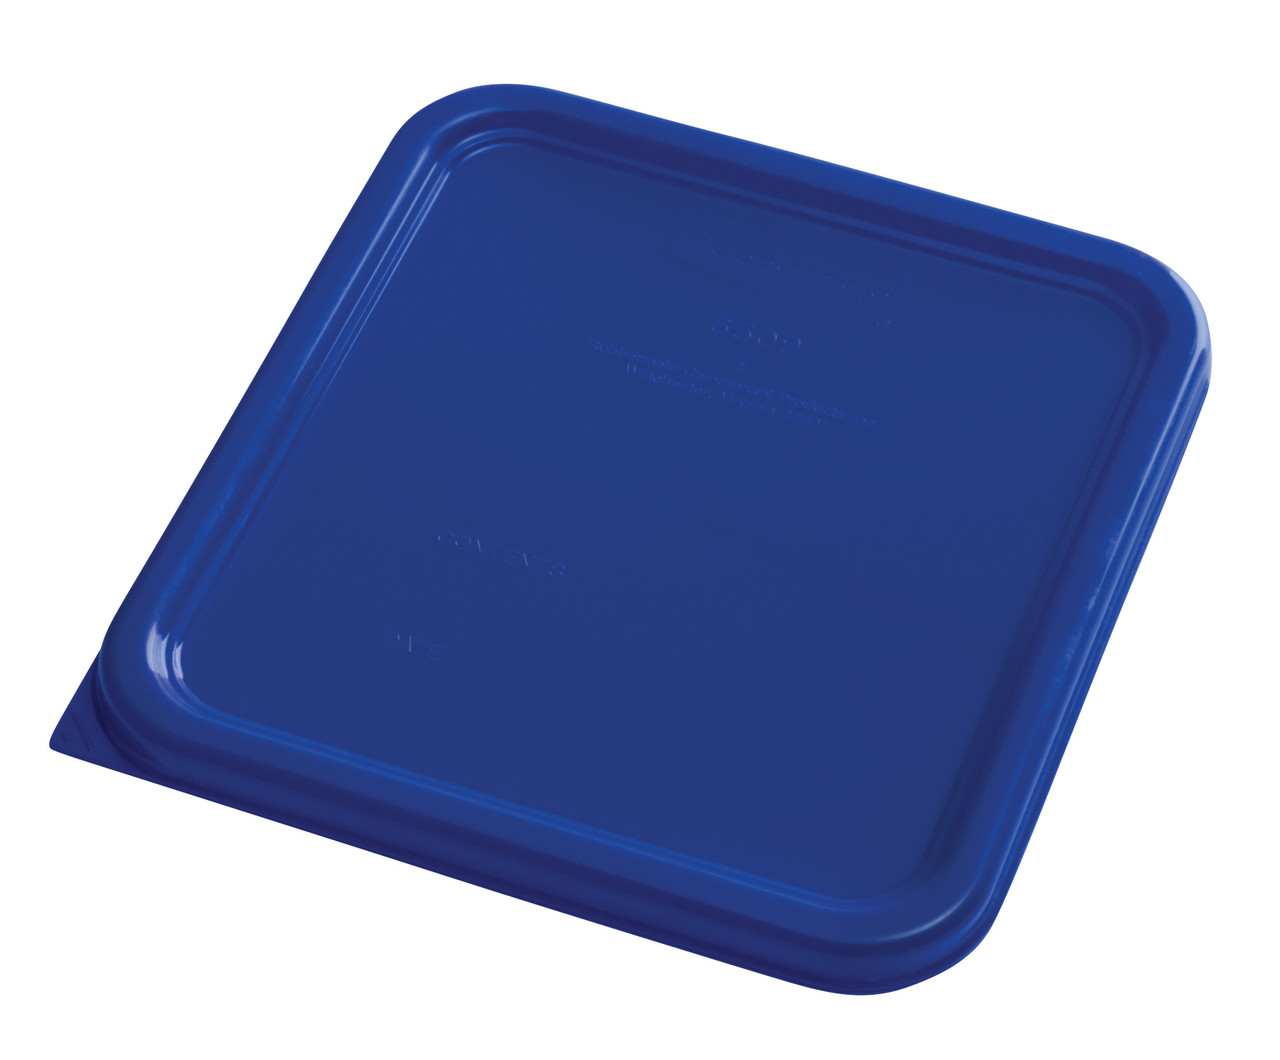 Rubbermaid Square Container Lid - Small Blue - 1980302